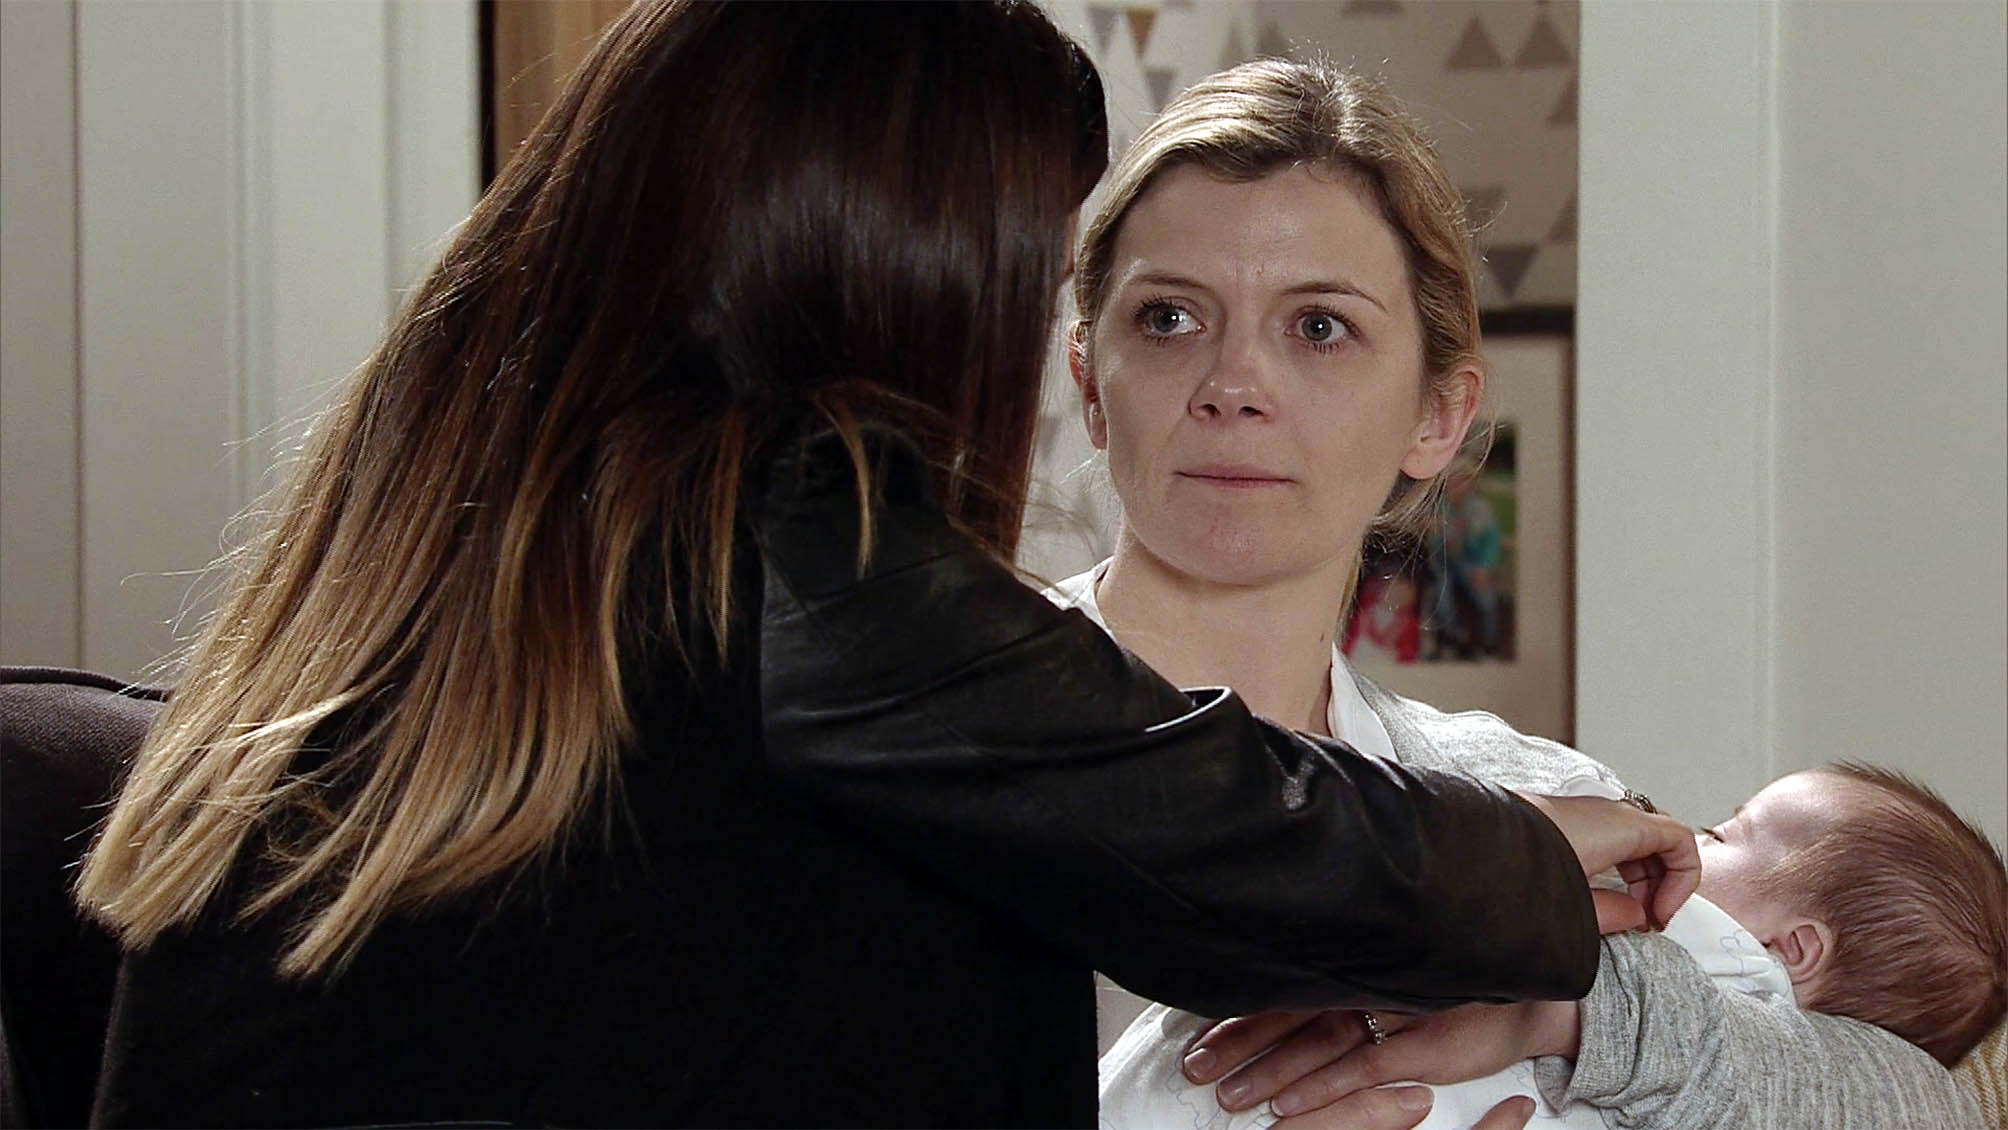 FROM ITV STRICT EMBARGO - Print media - No Use Before Tuesday 14th February 2017 Online Media - No Use Before 0700hrs Tuesday 14th February 2017 Coronation Street - Ep 9107 Wednesday 22nd February 2017 When Michelle Connor in a manner which alters the visual appearance of the person photographed deemed detrimental or inappropriate by ITV plc Picture Desk. This photograph must not be syndicated to any other company, publication or website, or permanently archived, without the express written permission of ITV Plc Picture Desk. Full Terms and conditions are available on the website www.itvpictures.com